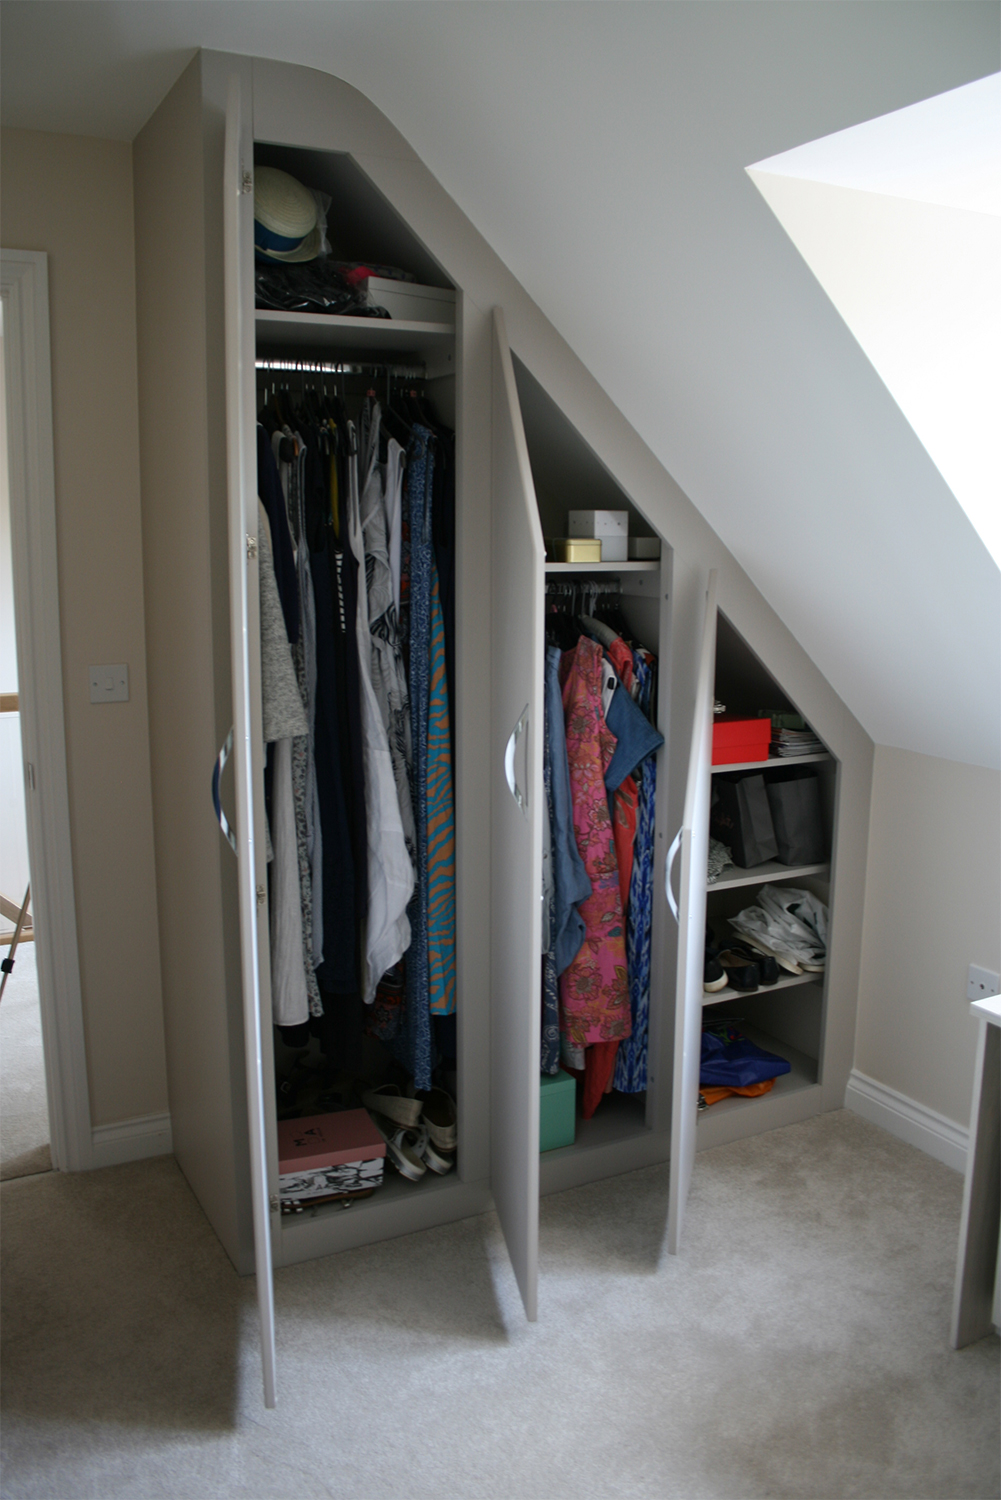 Bathroom Storage Furniture Fitted Furniture For Loft Conversions And Angled Ceilings